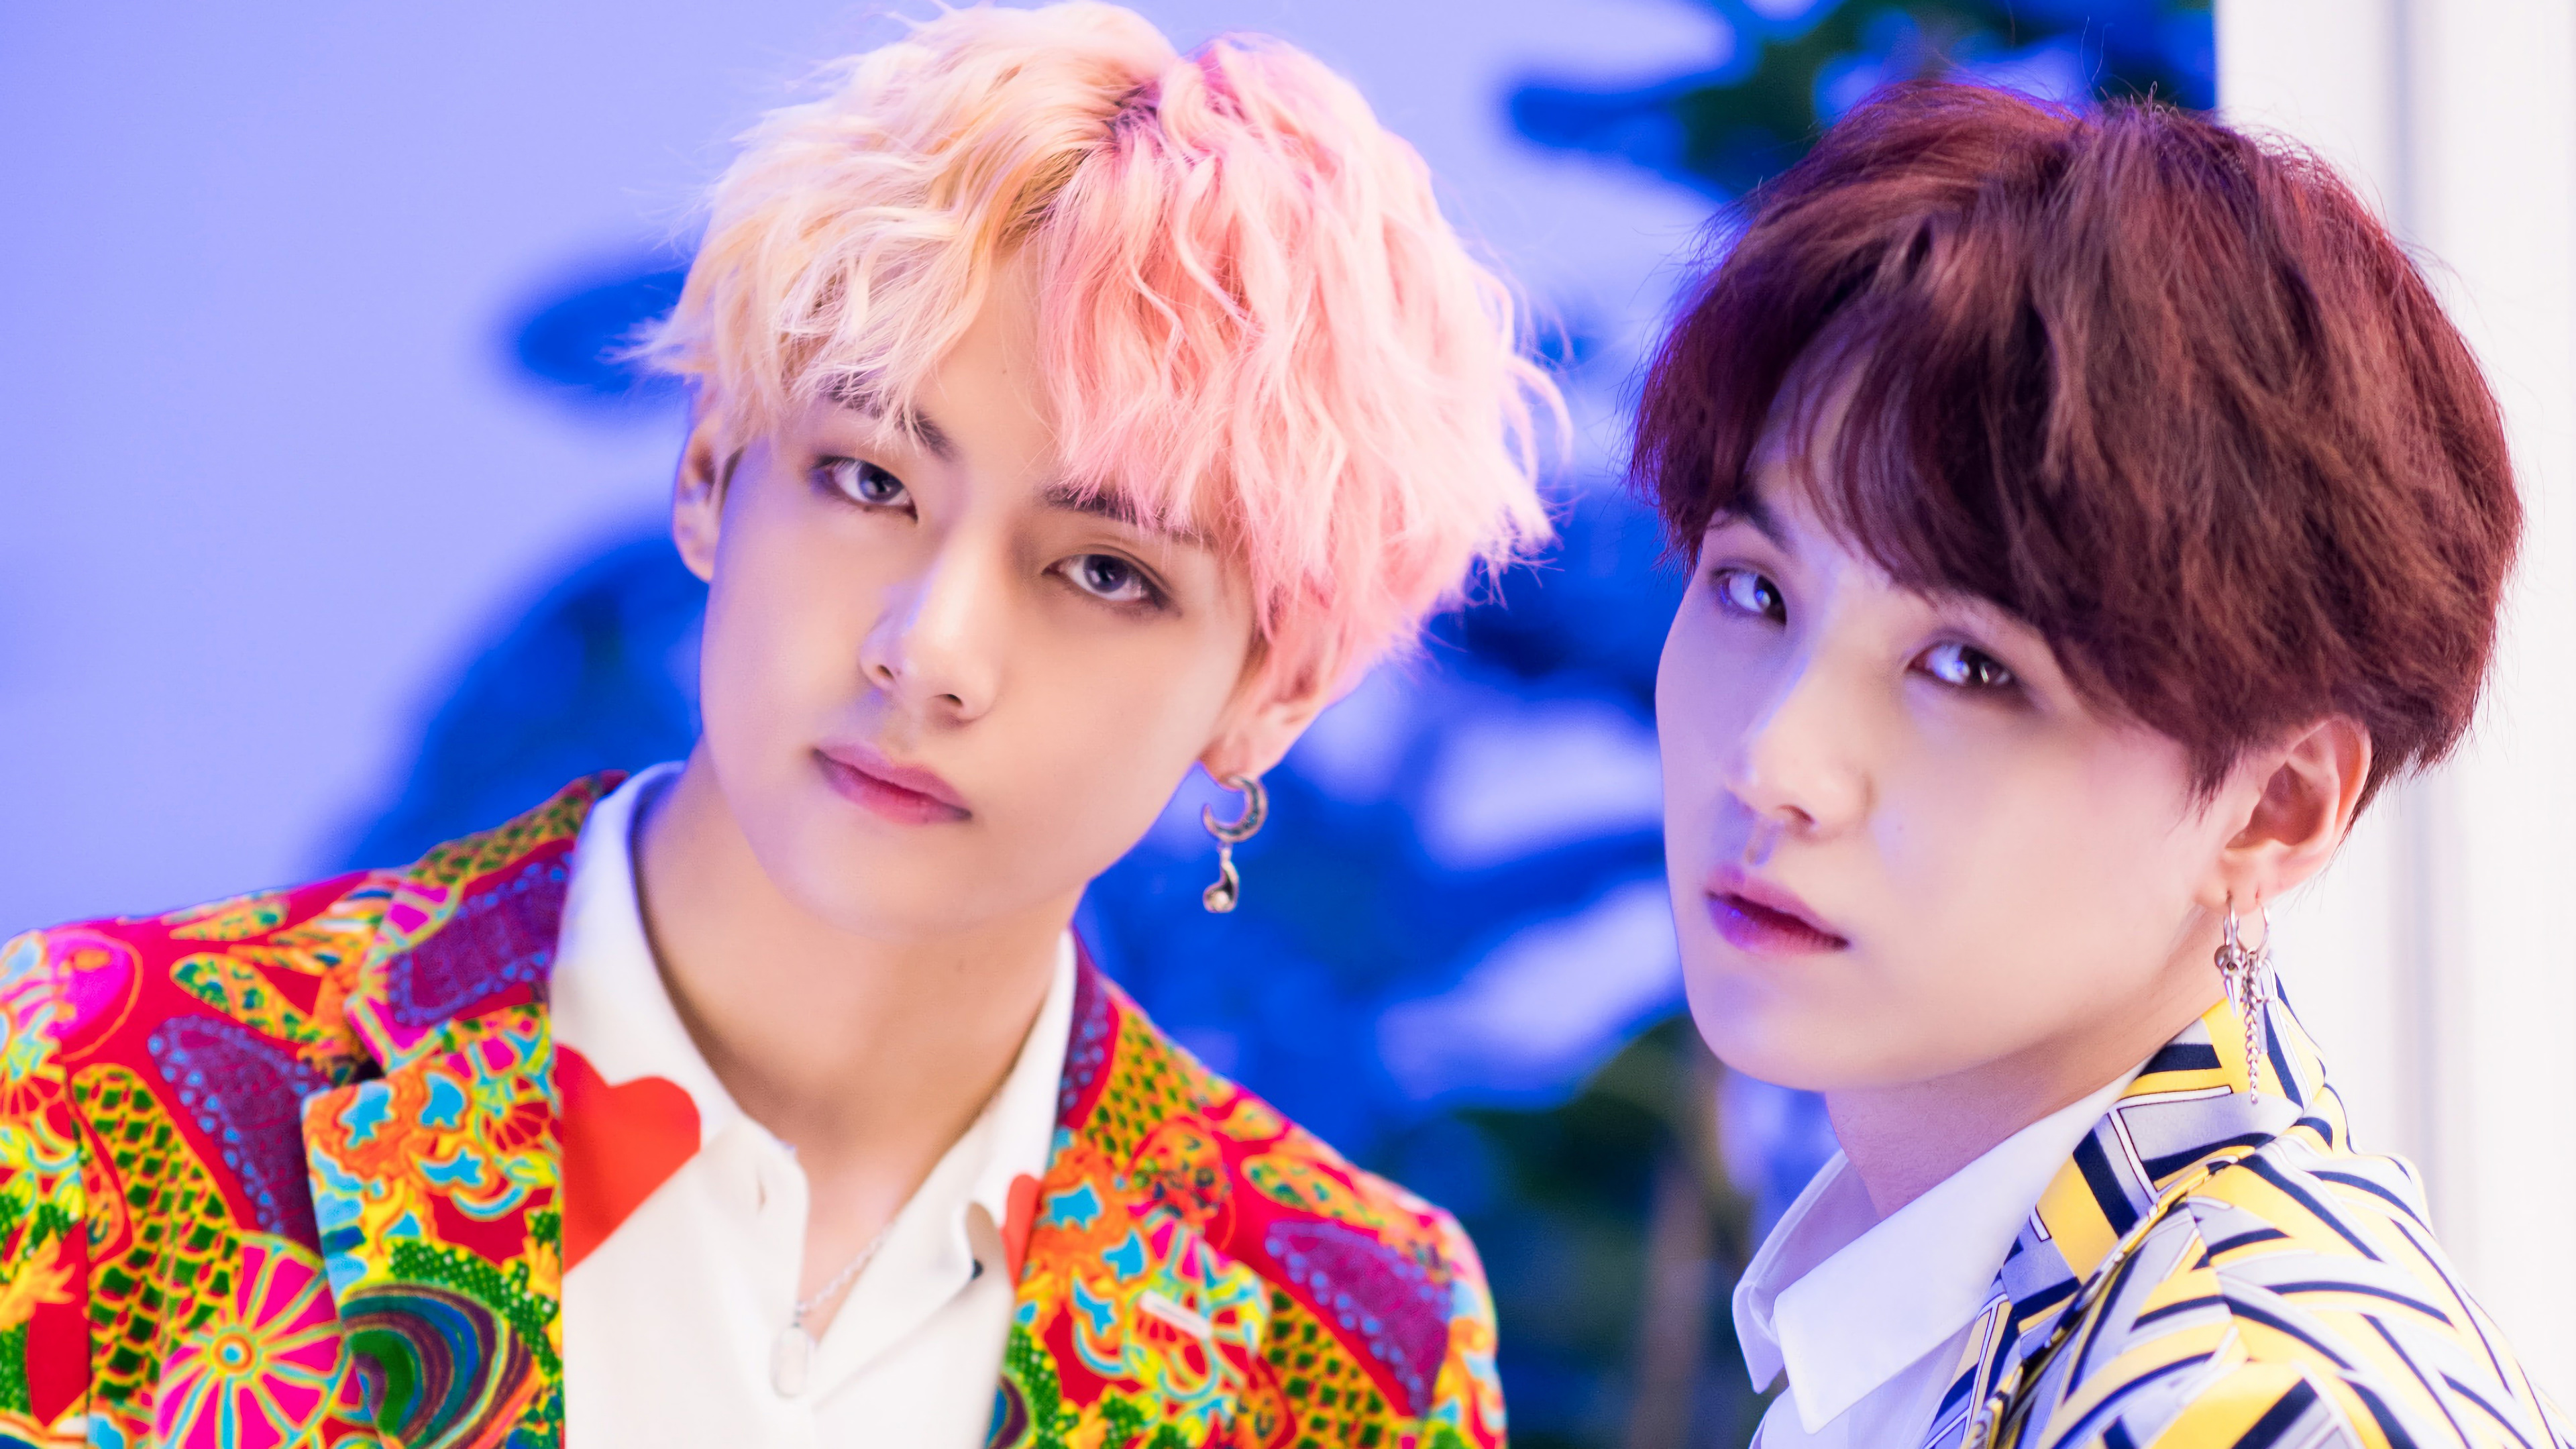 V and Suga BTS IDOL Bangtan Boys 4K 22926 3840x2160